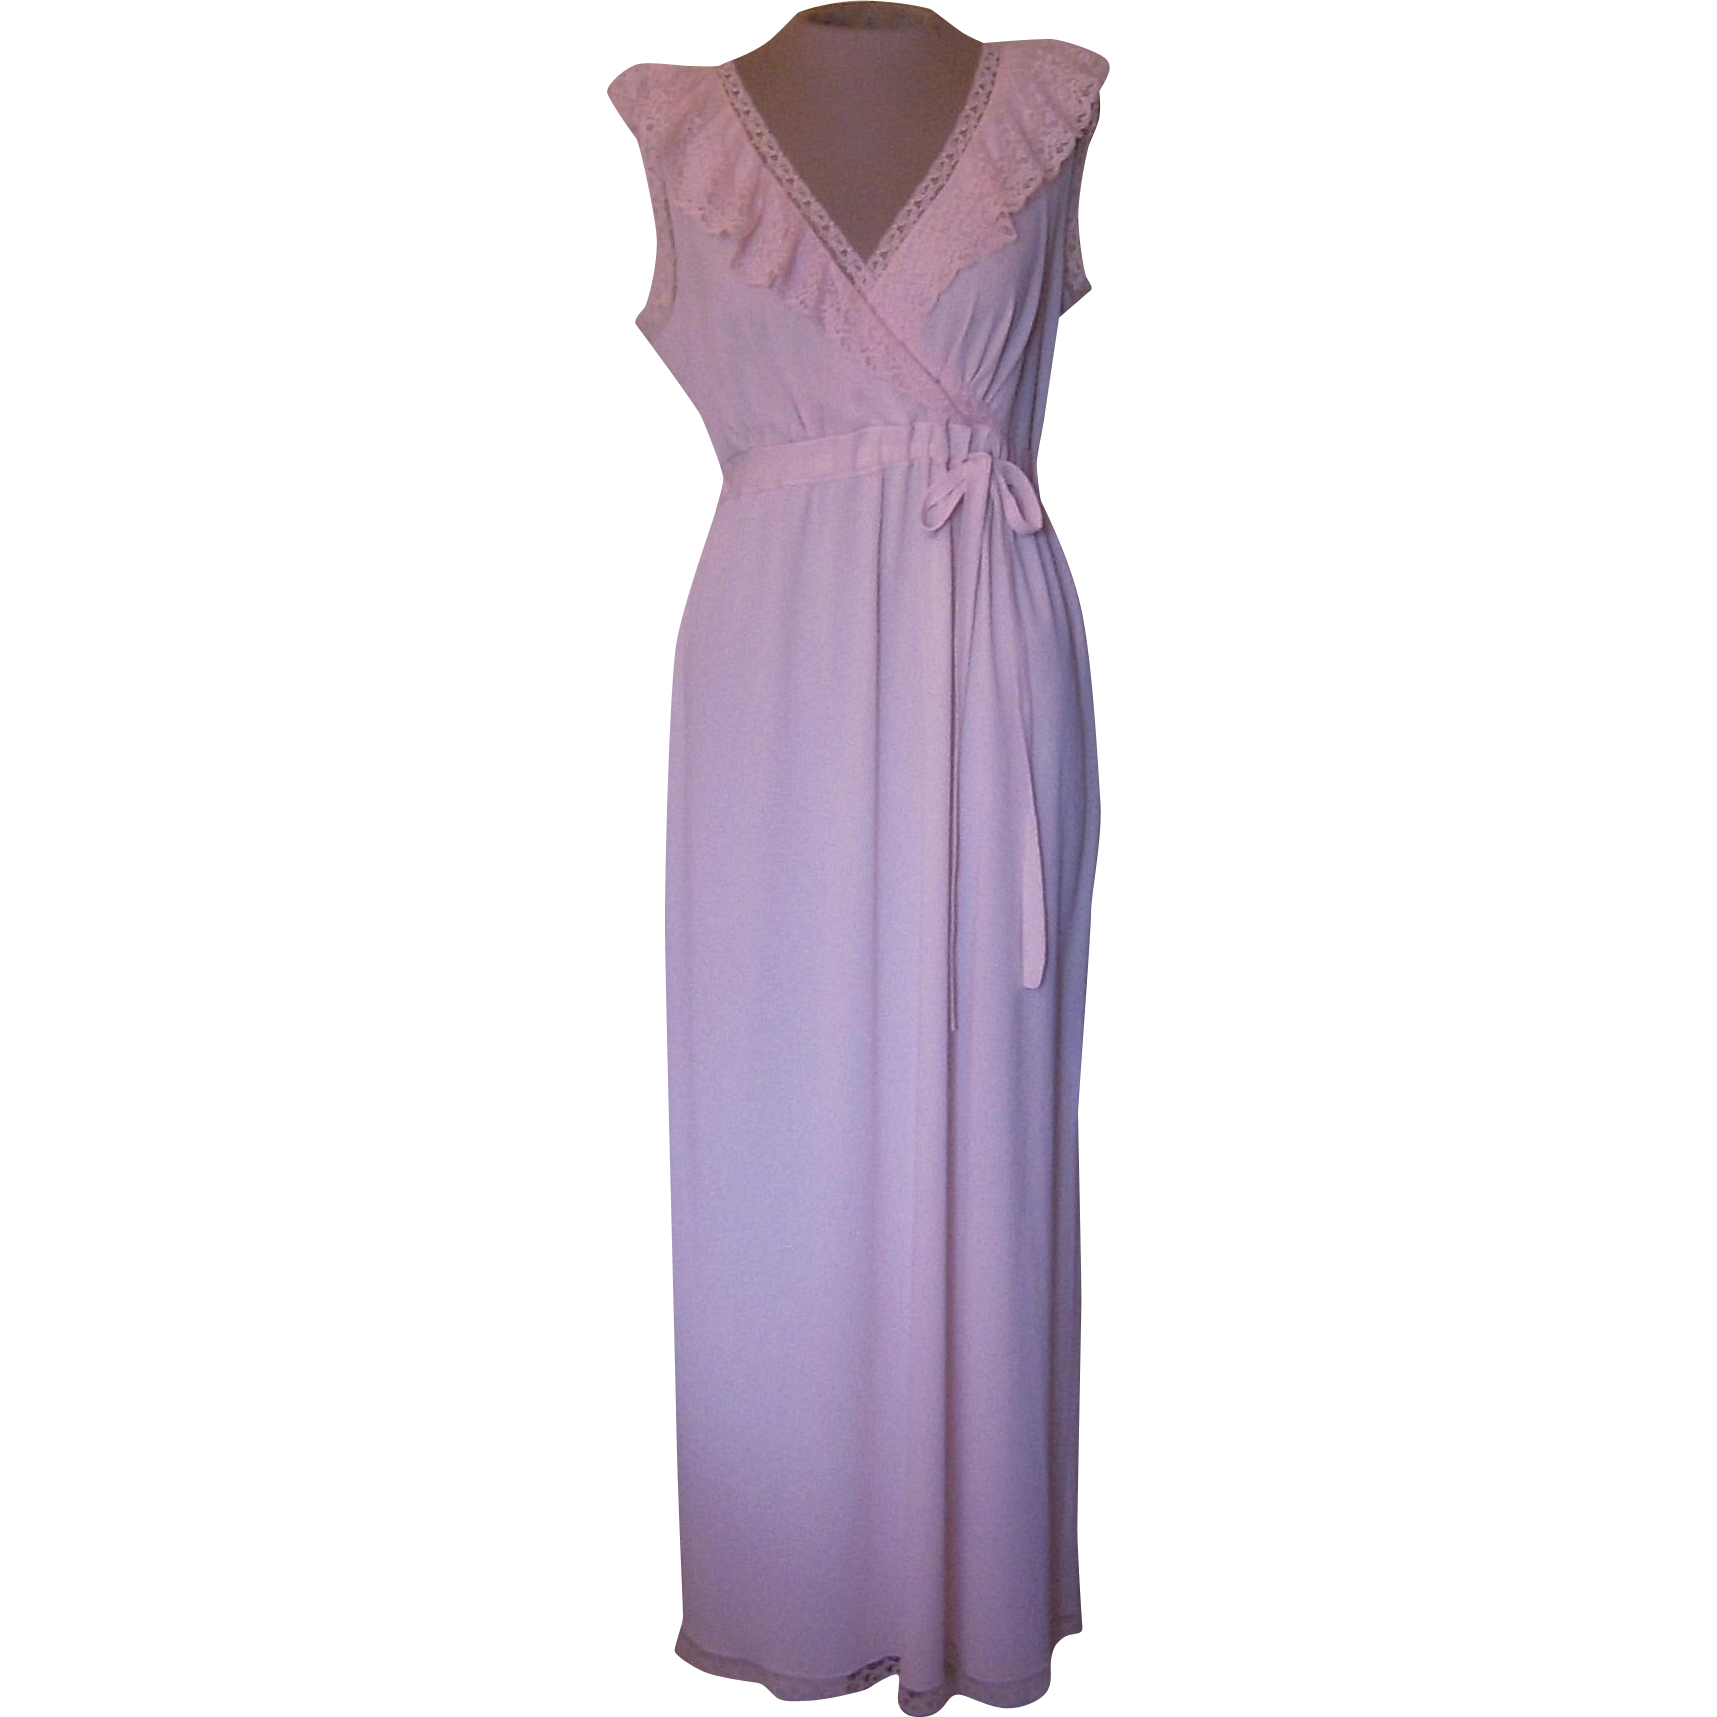 This is a lovely light pink long nightgown from France. The nightgown has a V in the front and there is a 1/2 inch wide pink lace that is along the V.